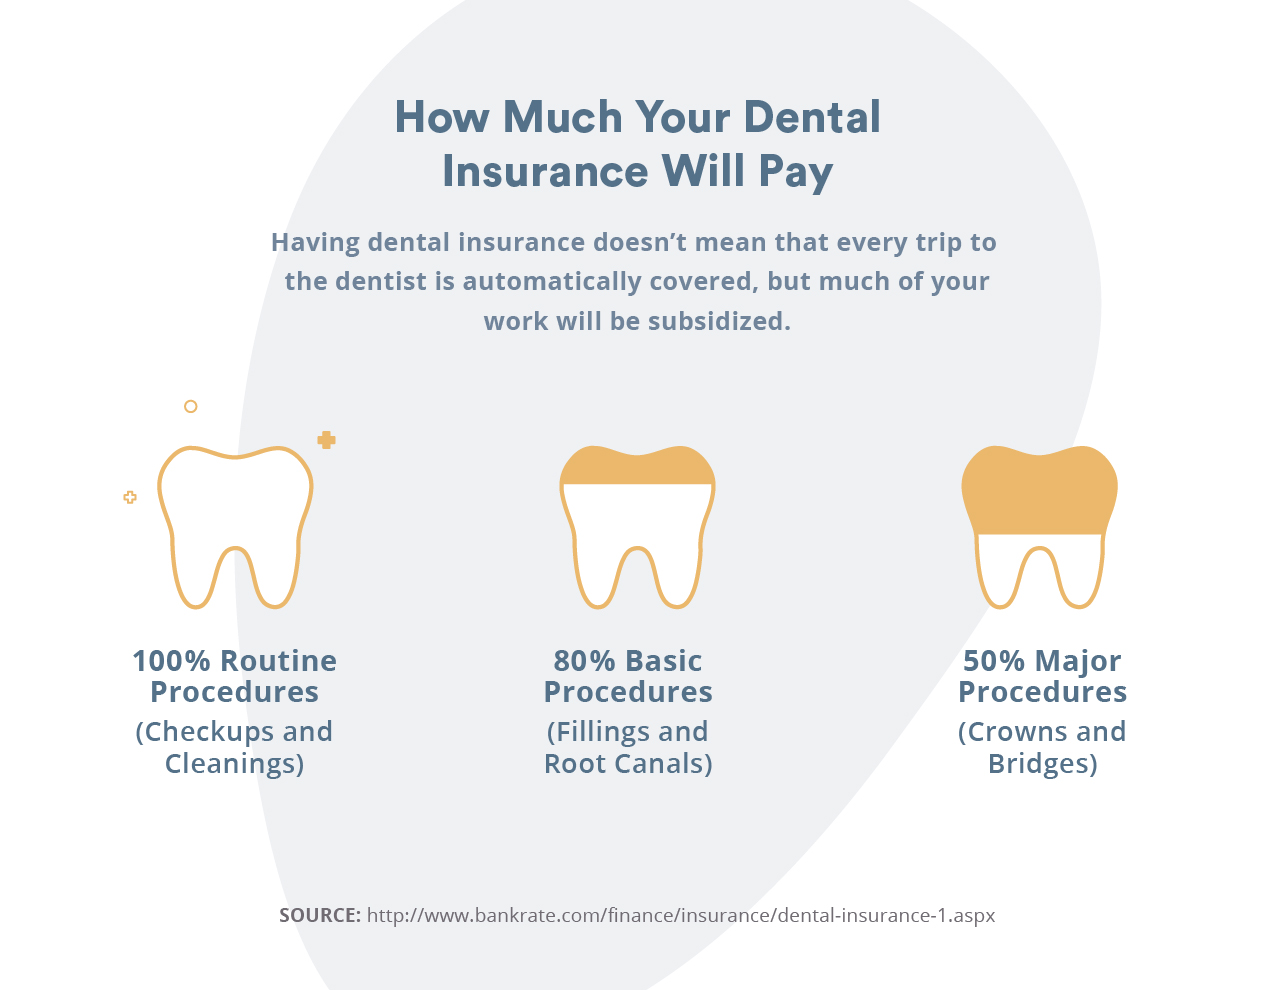 How much will your insurance pay?